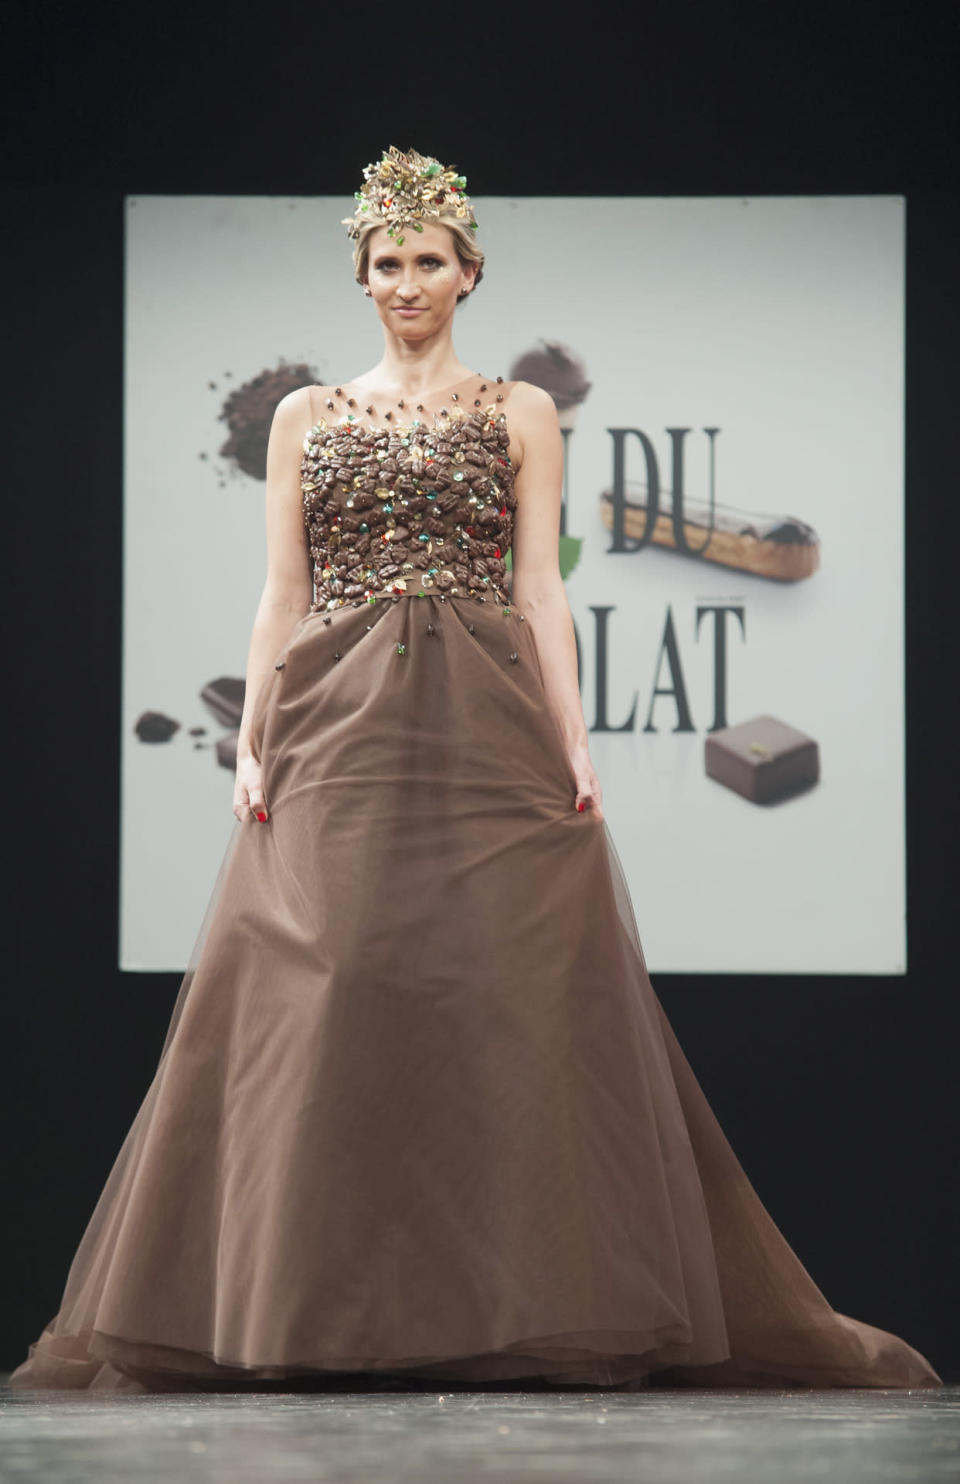 <p>For the chocolate lover with an impending marriage, look no further for your wedding dress. Don't worry about dessert! Guests can dine on your gown. </p>